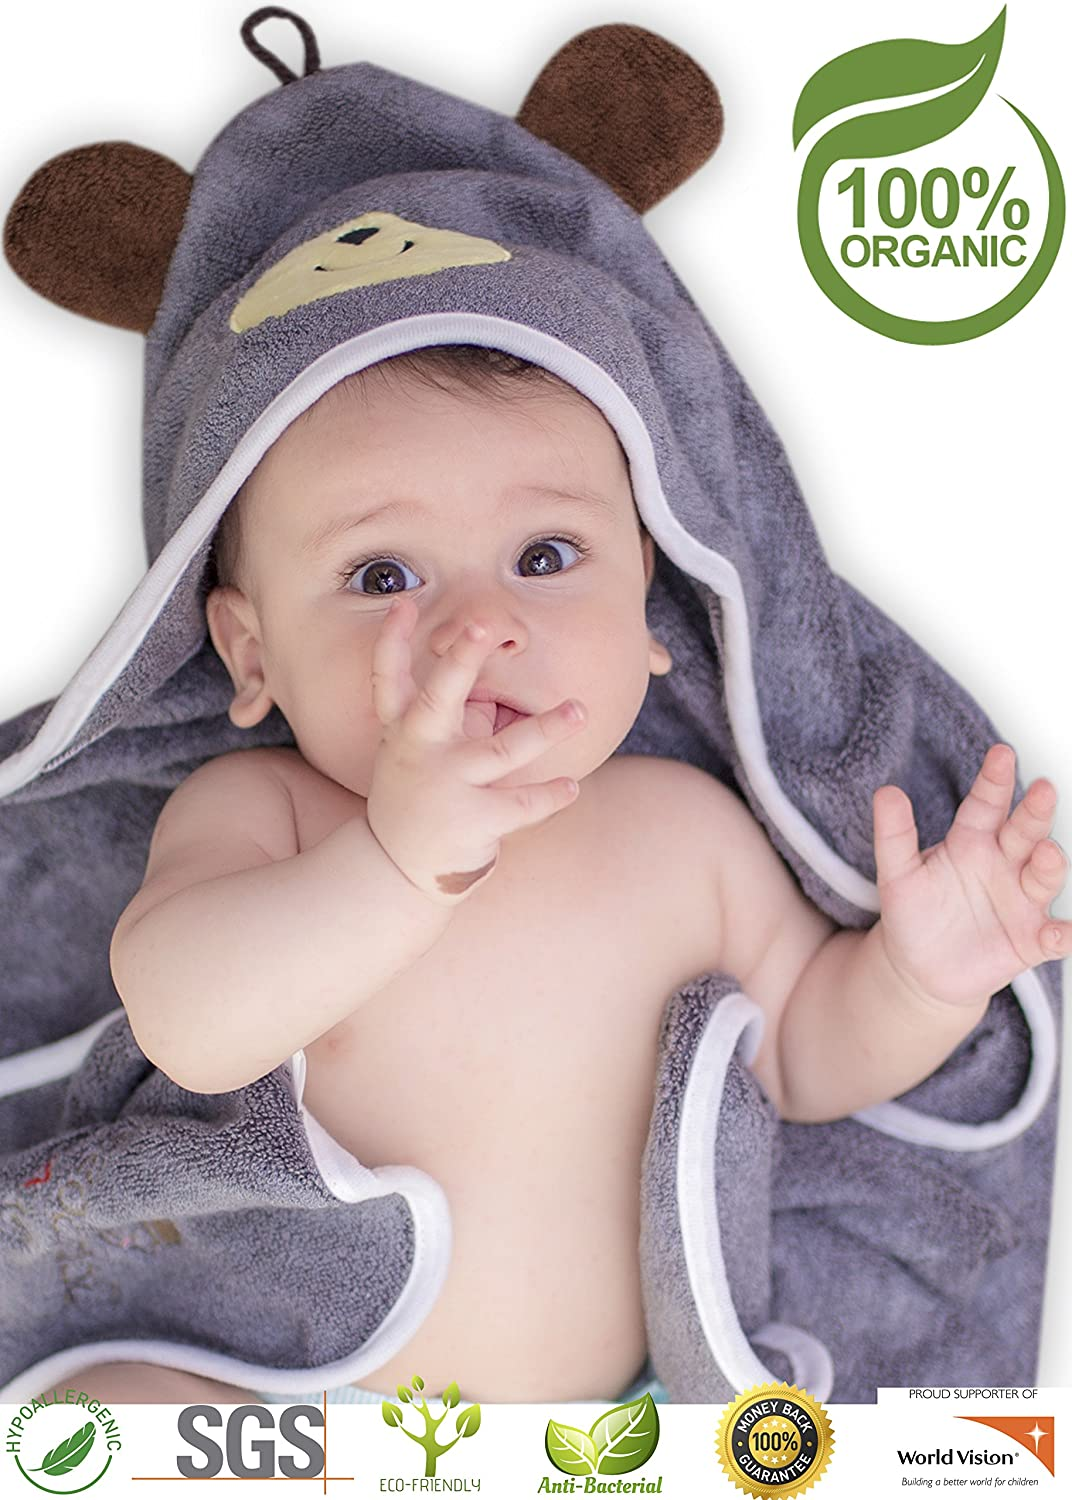 Premium Hooded Baby Towel, 100% Organic Bamboo, Free Baby Bib, Perfect Baby Shower Gift, 35x35 for Newborns Infants Toddlers & Kids, for Boys and Girls at Bath Pool & Beach, Better Than Cotton (Gray) Artyish